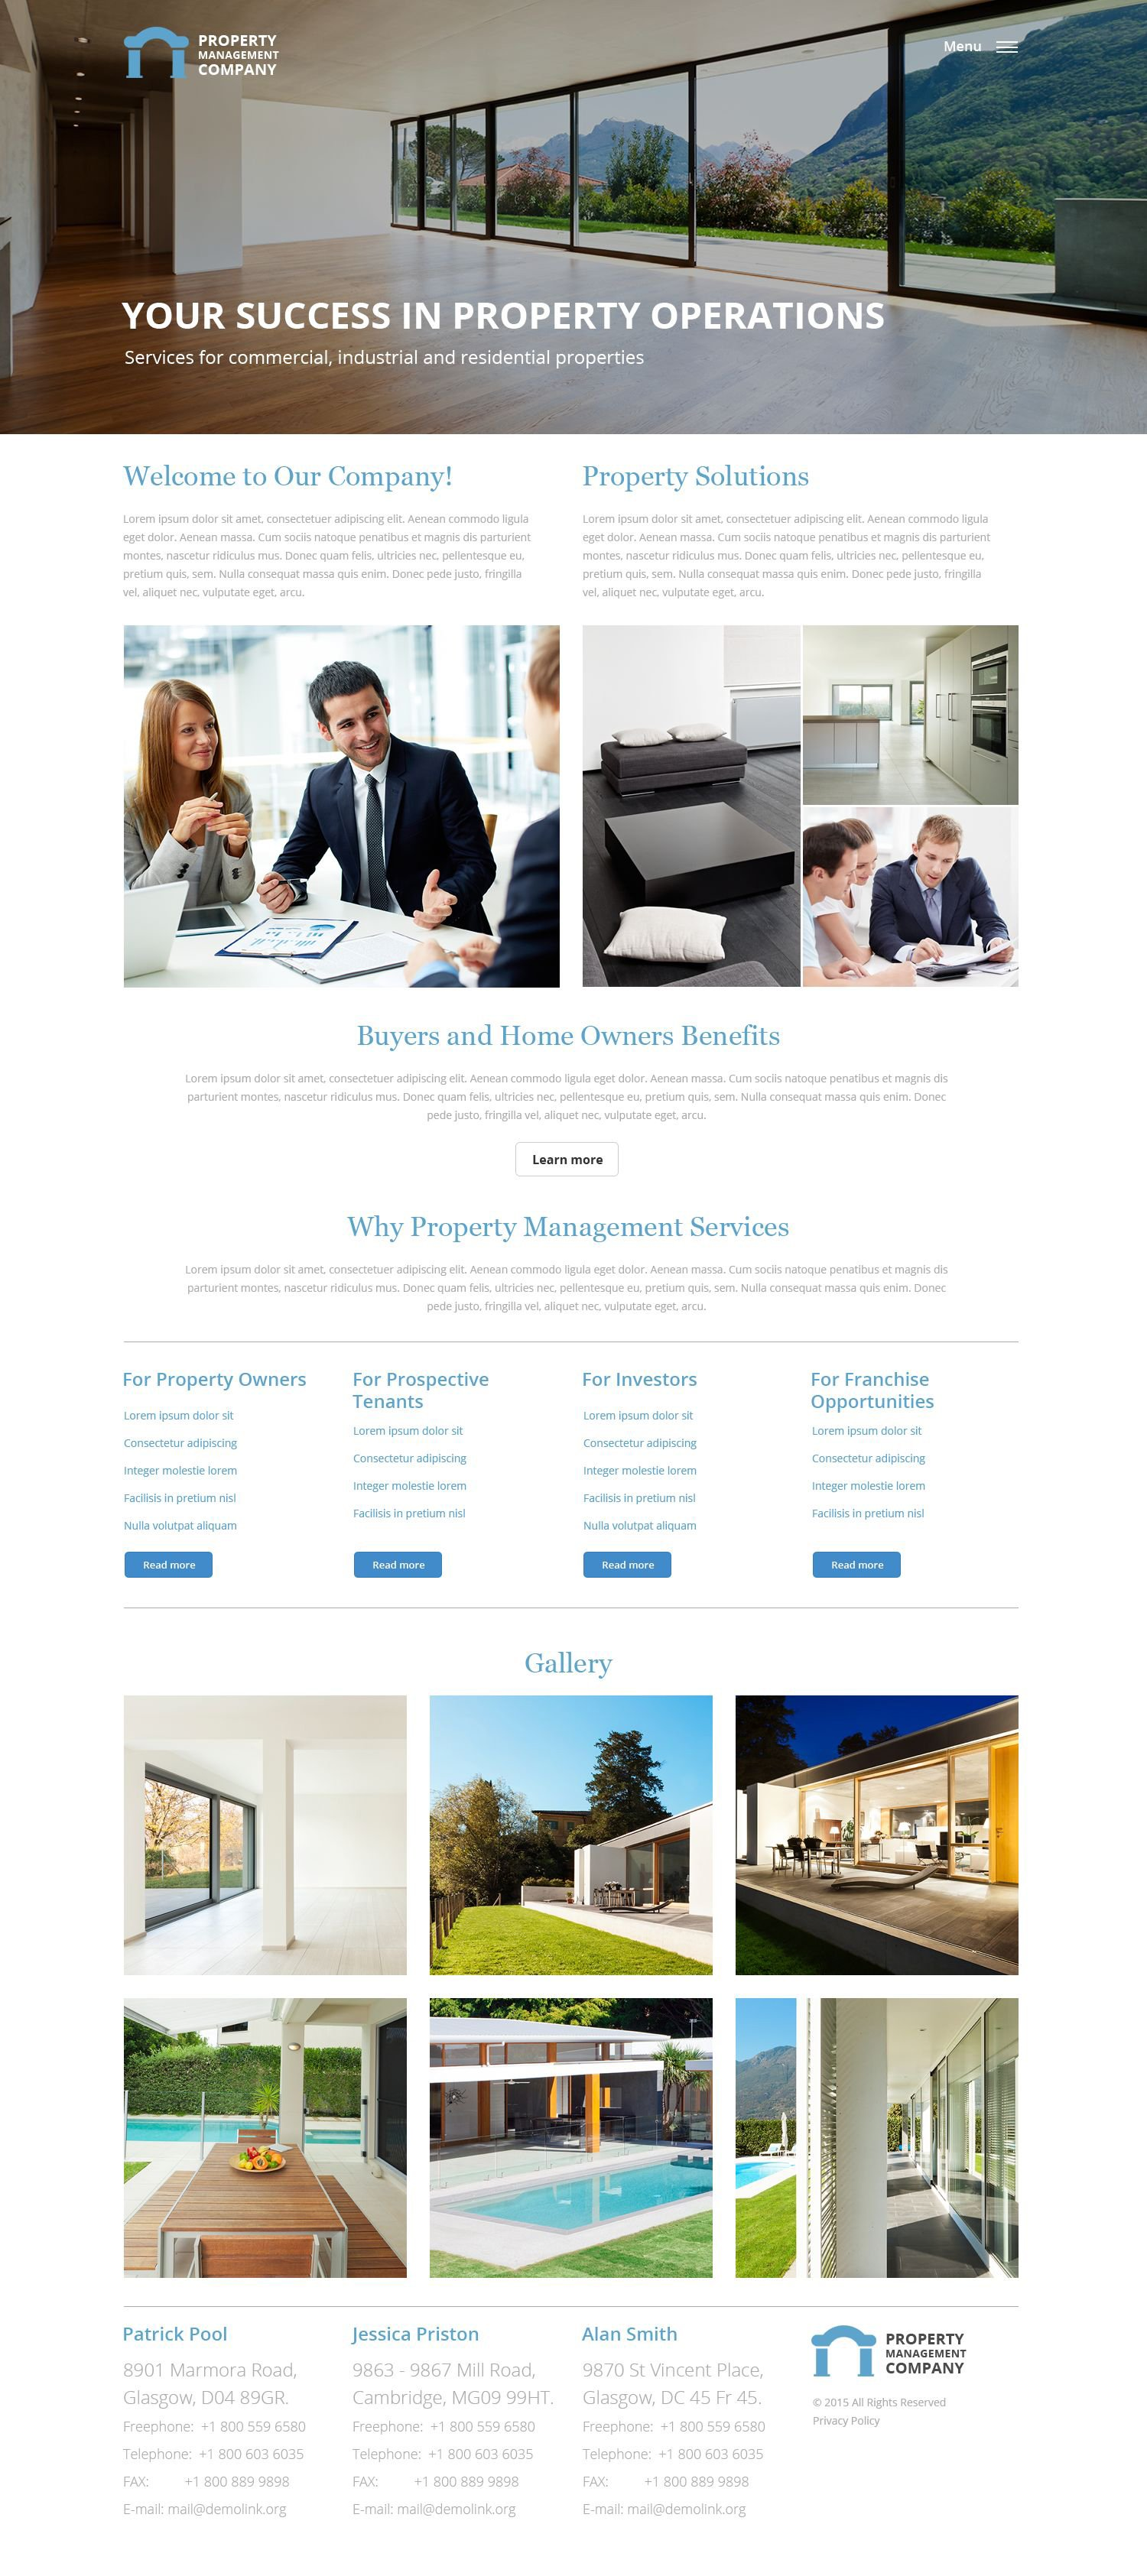 The Property Apartments Bootstrap Design 53347, one of the best website templates of its kind (real estate, most popular), also known as property apartments website template, rent website template, real estate agency website template, services website template, house website template, home website template, apartment website template, buildings website template, finance website template, loan website template, sales website template, rentals website template, management website template, search website template, team website template, money website template, foreclosure website template, estimator website template, investment website template, development website template, constructions website template, architecture website template, engineering website template, apartment website template, sale website template, rent website template, architecture website template, broker website template, lots and related with property apartments, rent, real estate agency, services, house, home, apartment, buildings, finance, loan, sales, rentals, management, search, team, money, foreclosure, estimator, investment, development, constructions, architecture, engineering, apartment, sale, rent, architecture, broker, lots, etc.